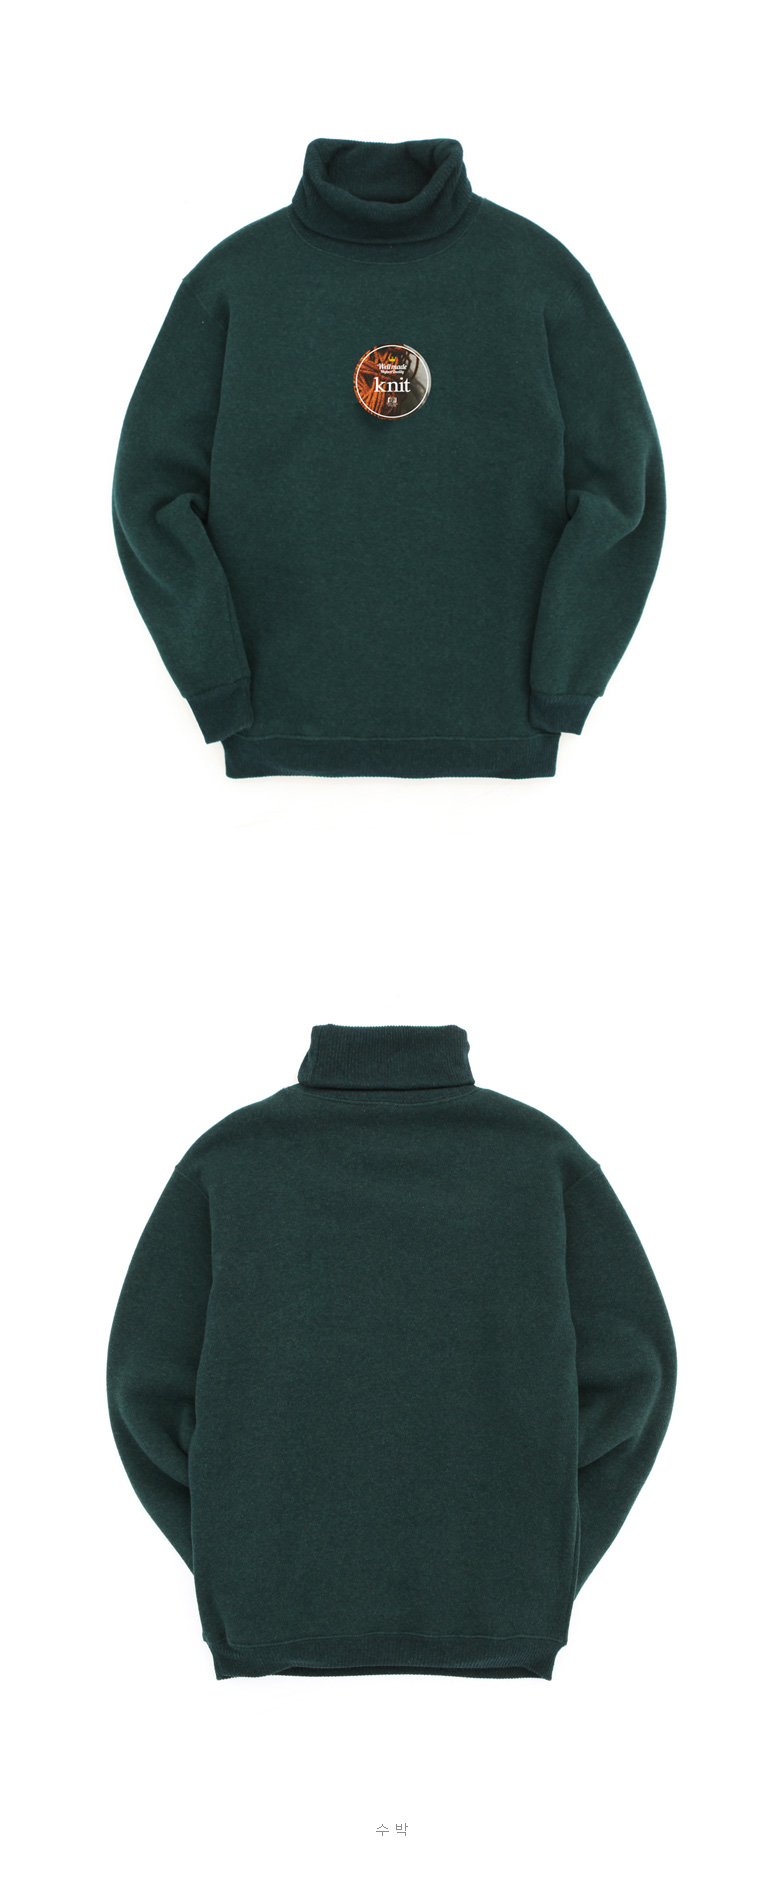 20161129_fp_mild_knit_green_ms.jpg